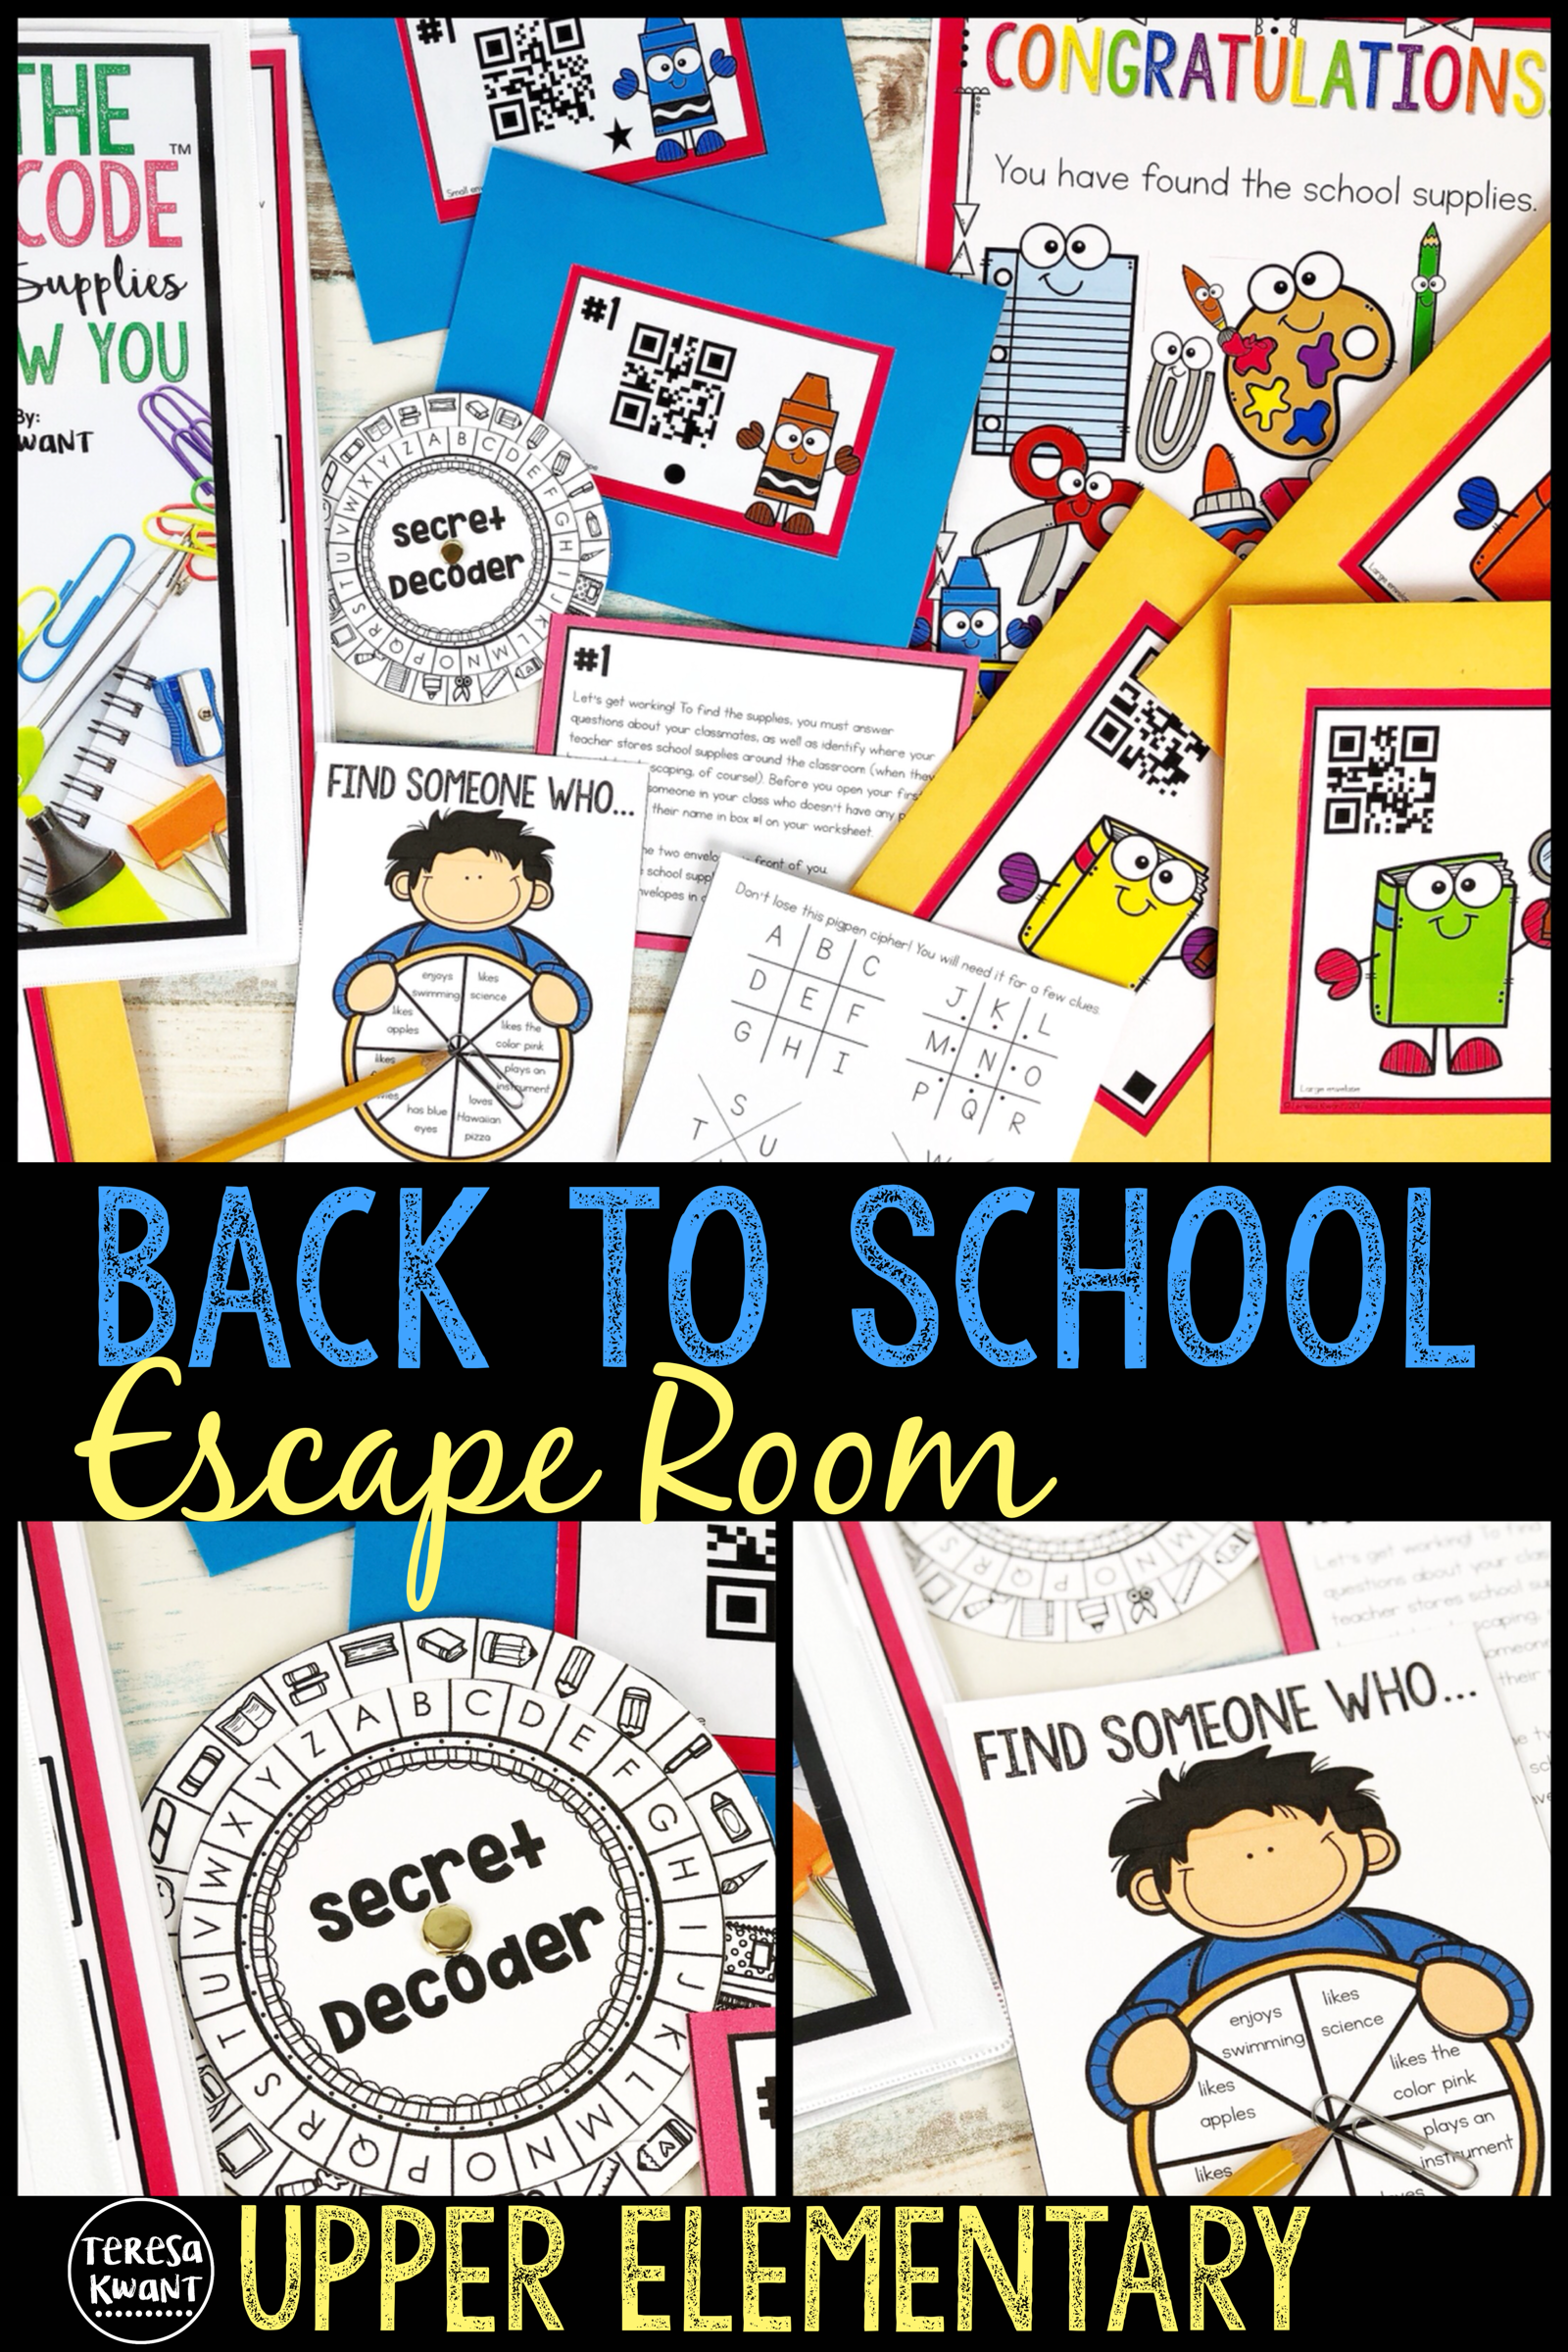 Back to School Escape Room Cracking the Classroom Code